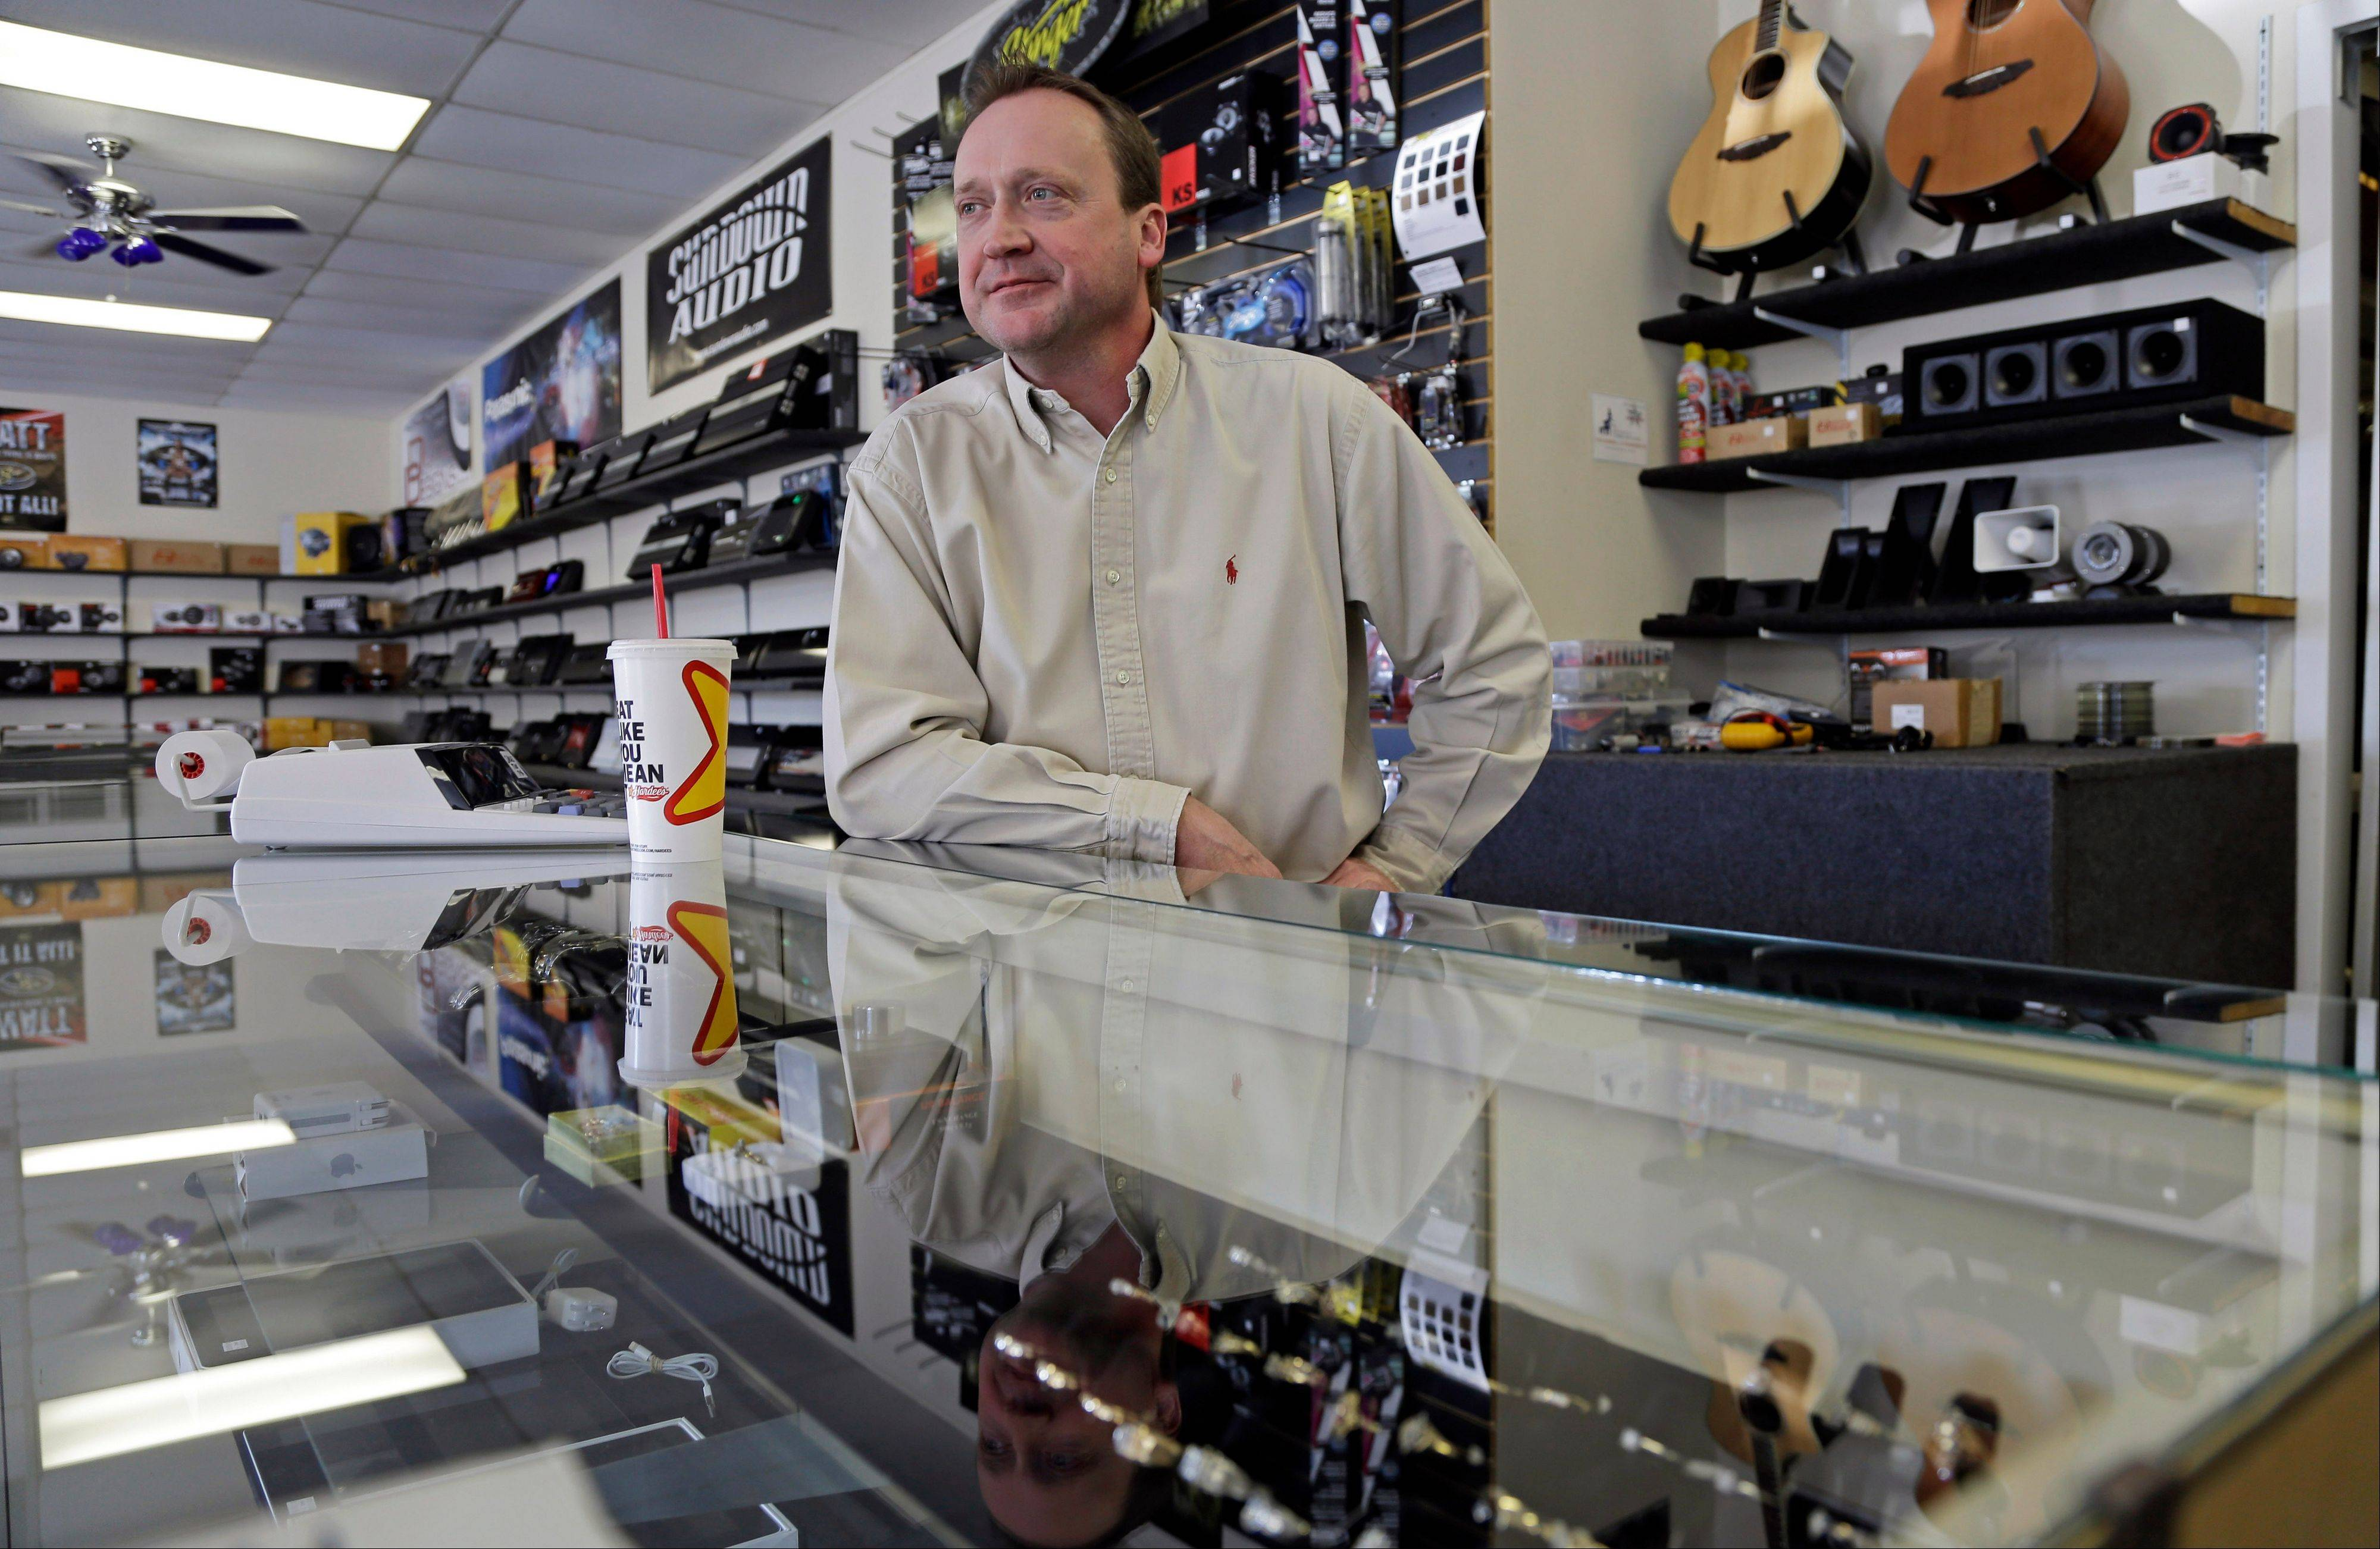 Tom Raper, owner of Bragg Pawn Shop, talks about small business near Fort Bragg military base.